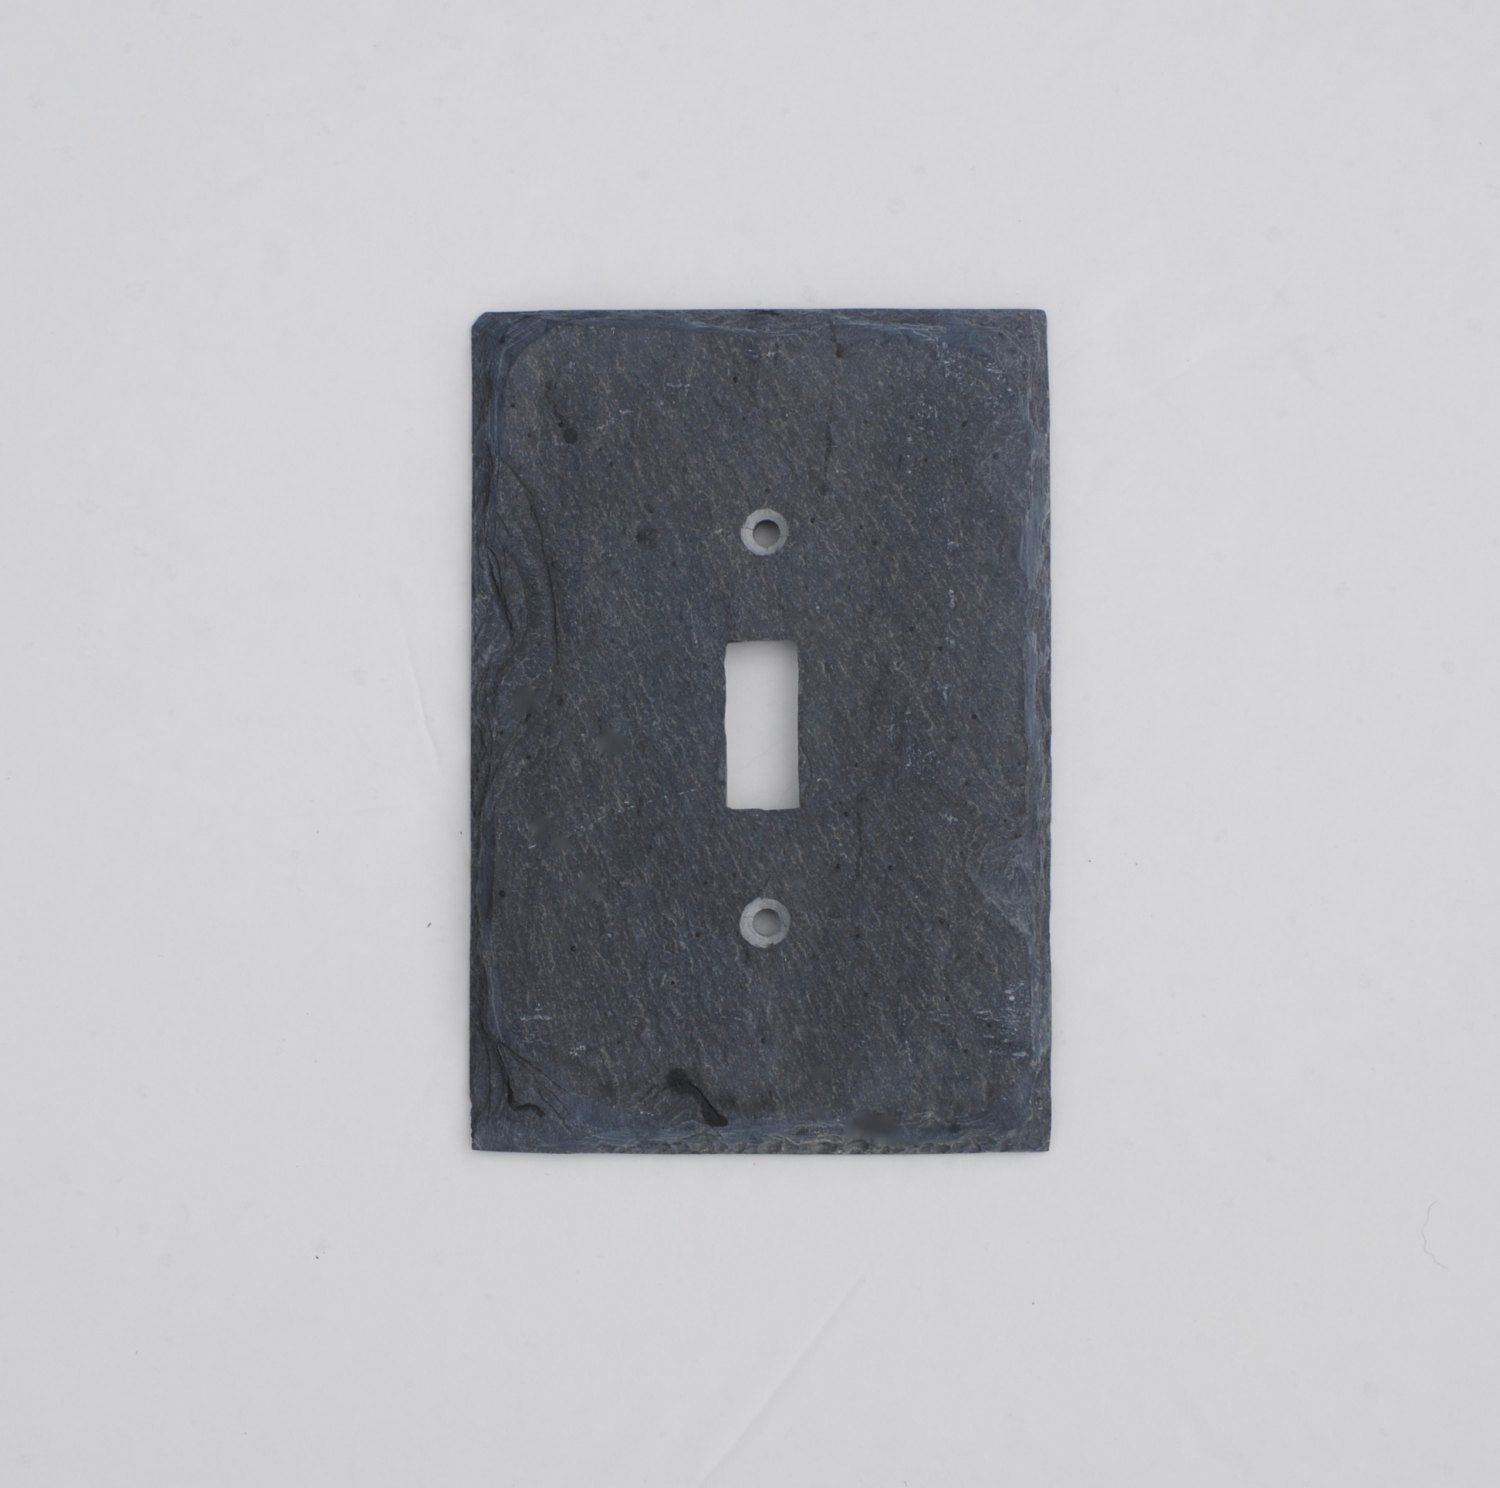 Decorative Light Switch Plates Interesting Decorative Light Switch Cover Switch Plate Wall Plate Rustic Inspiration Design